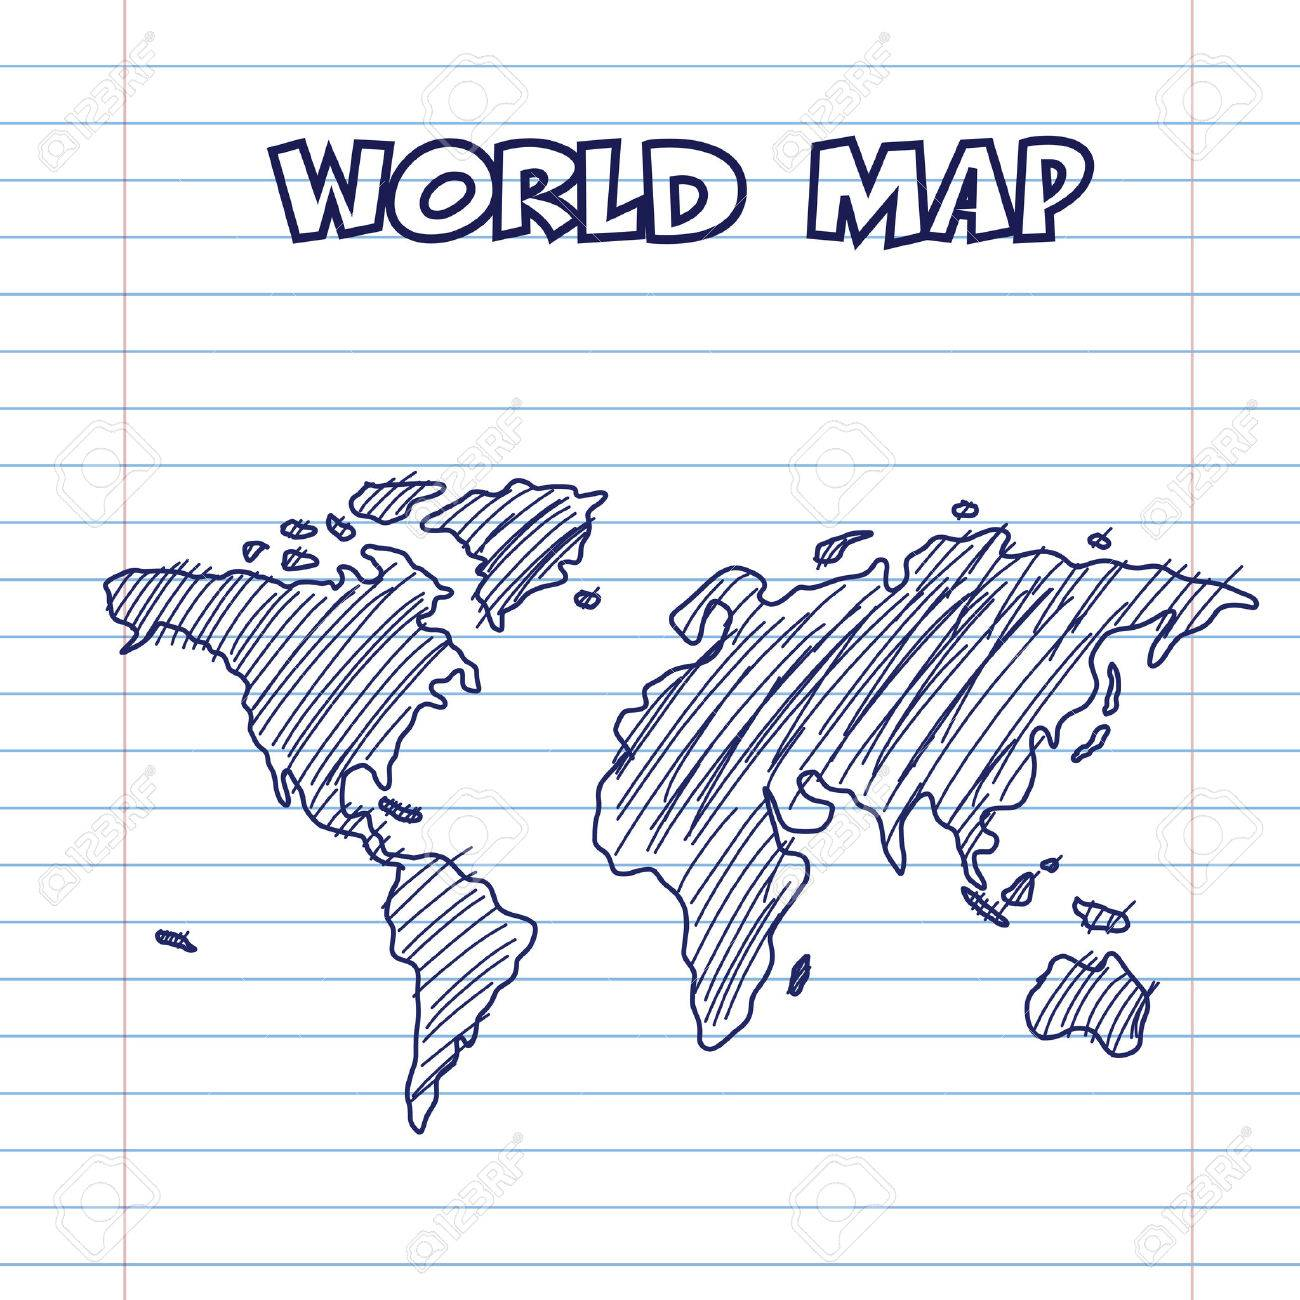 World map doodle pen ink hand drawn style royalty free cliparts world map doodle pen ink hand drawn style stock vector 22957366 sciox Images